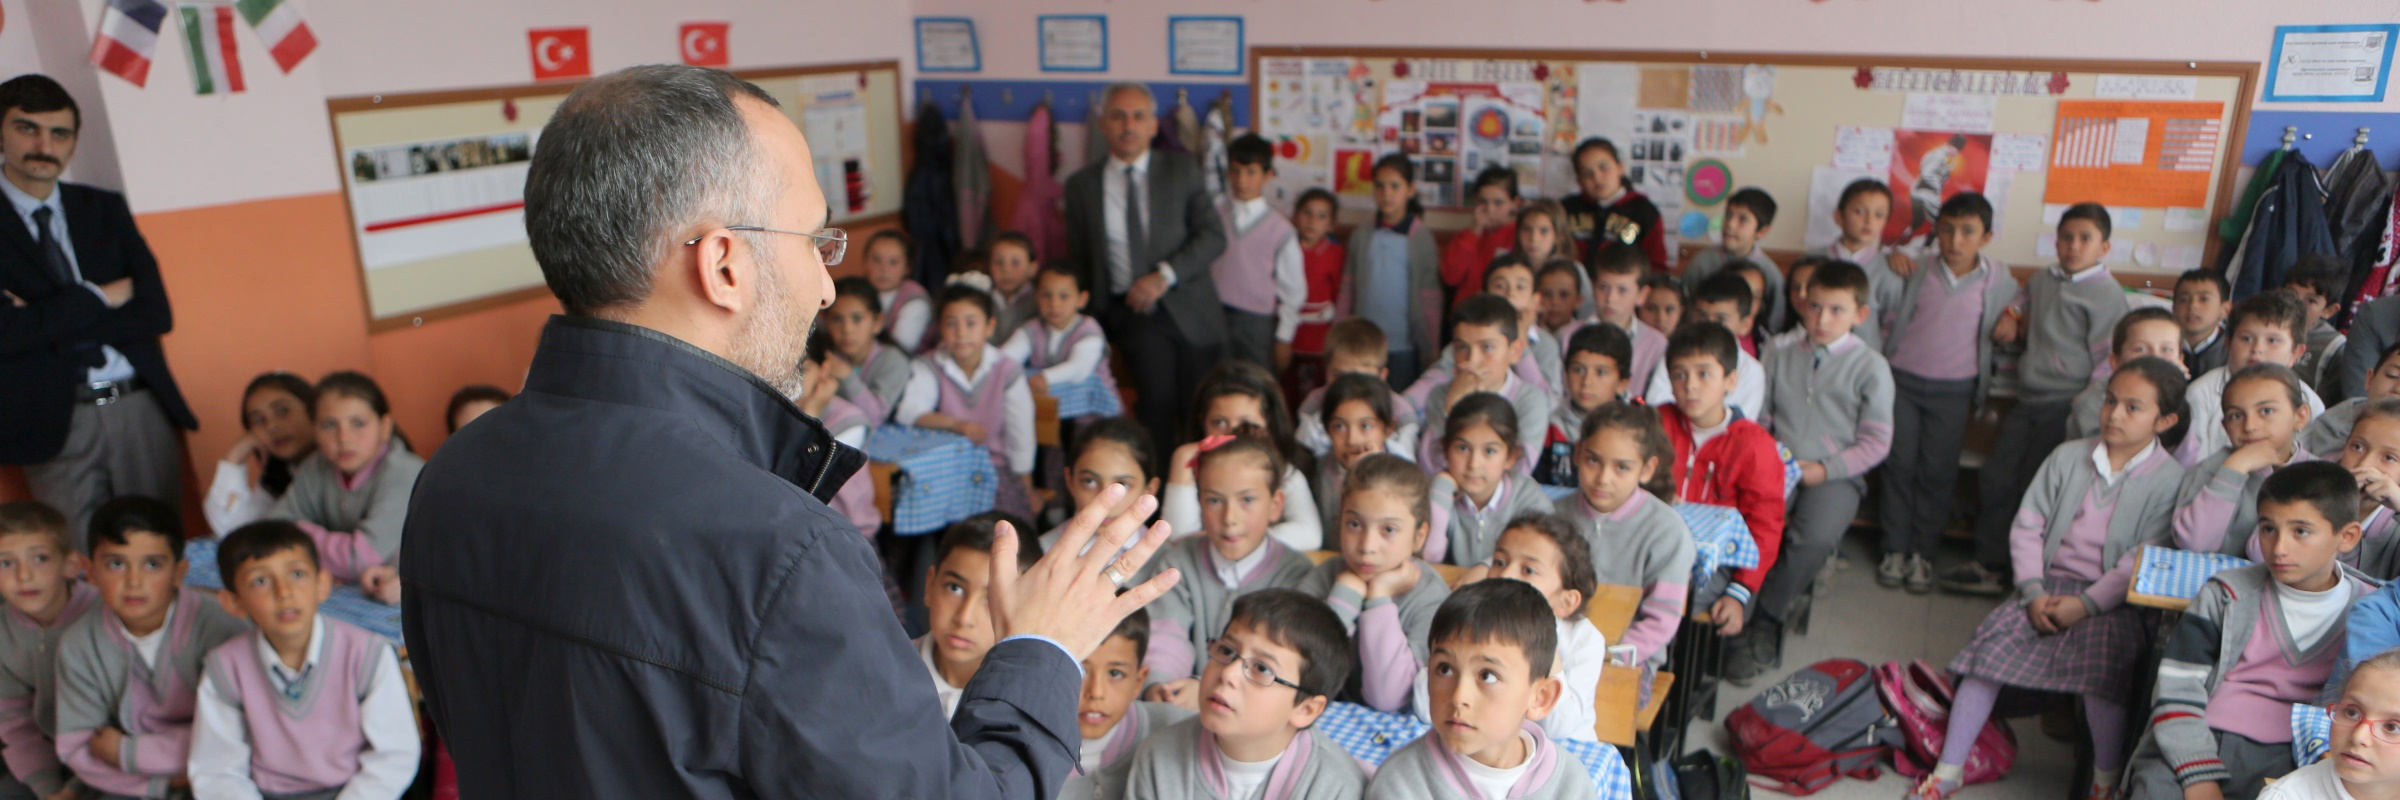 Man teaching a class of children